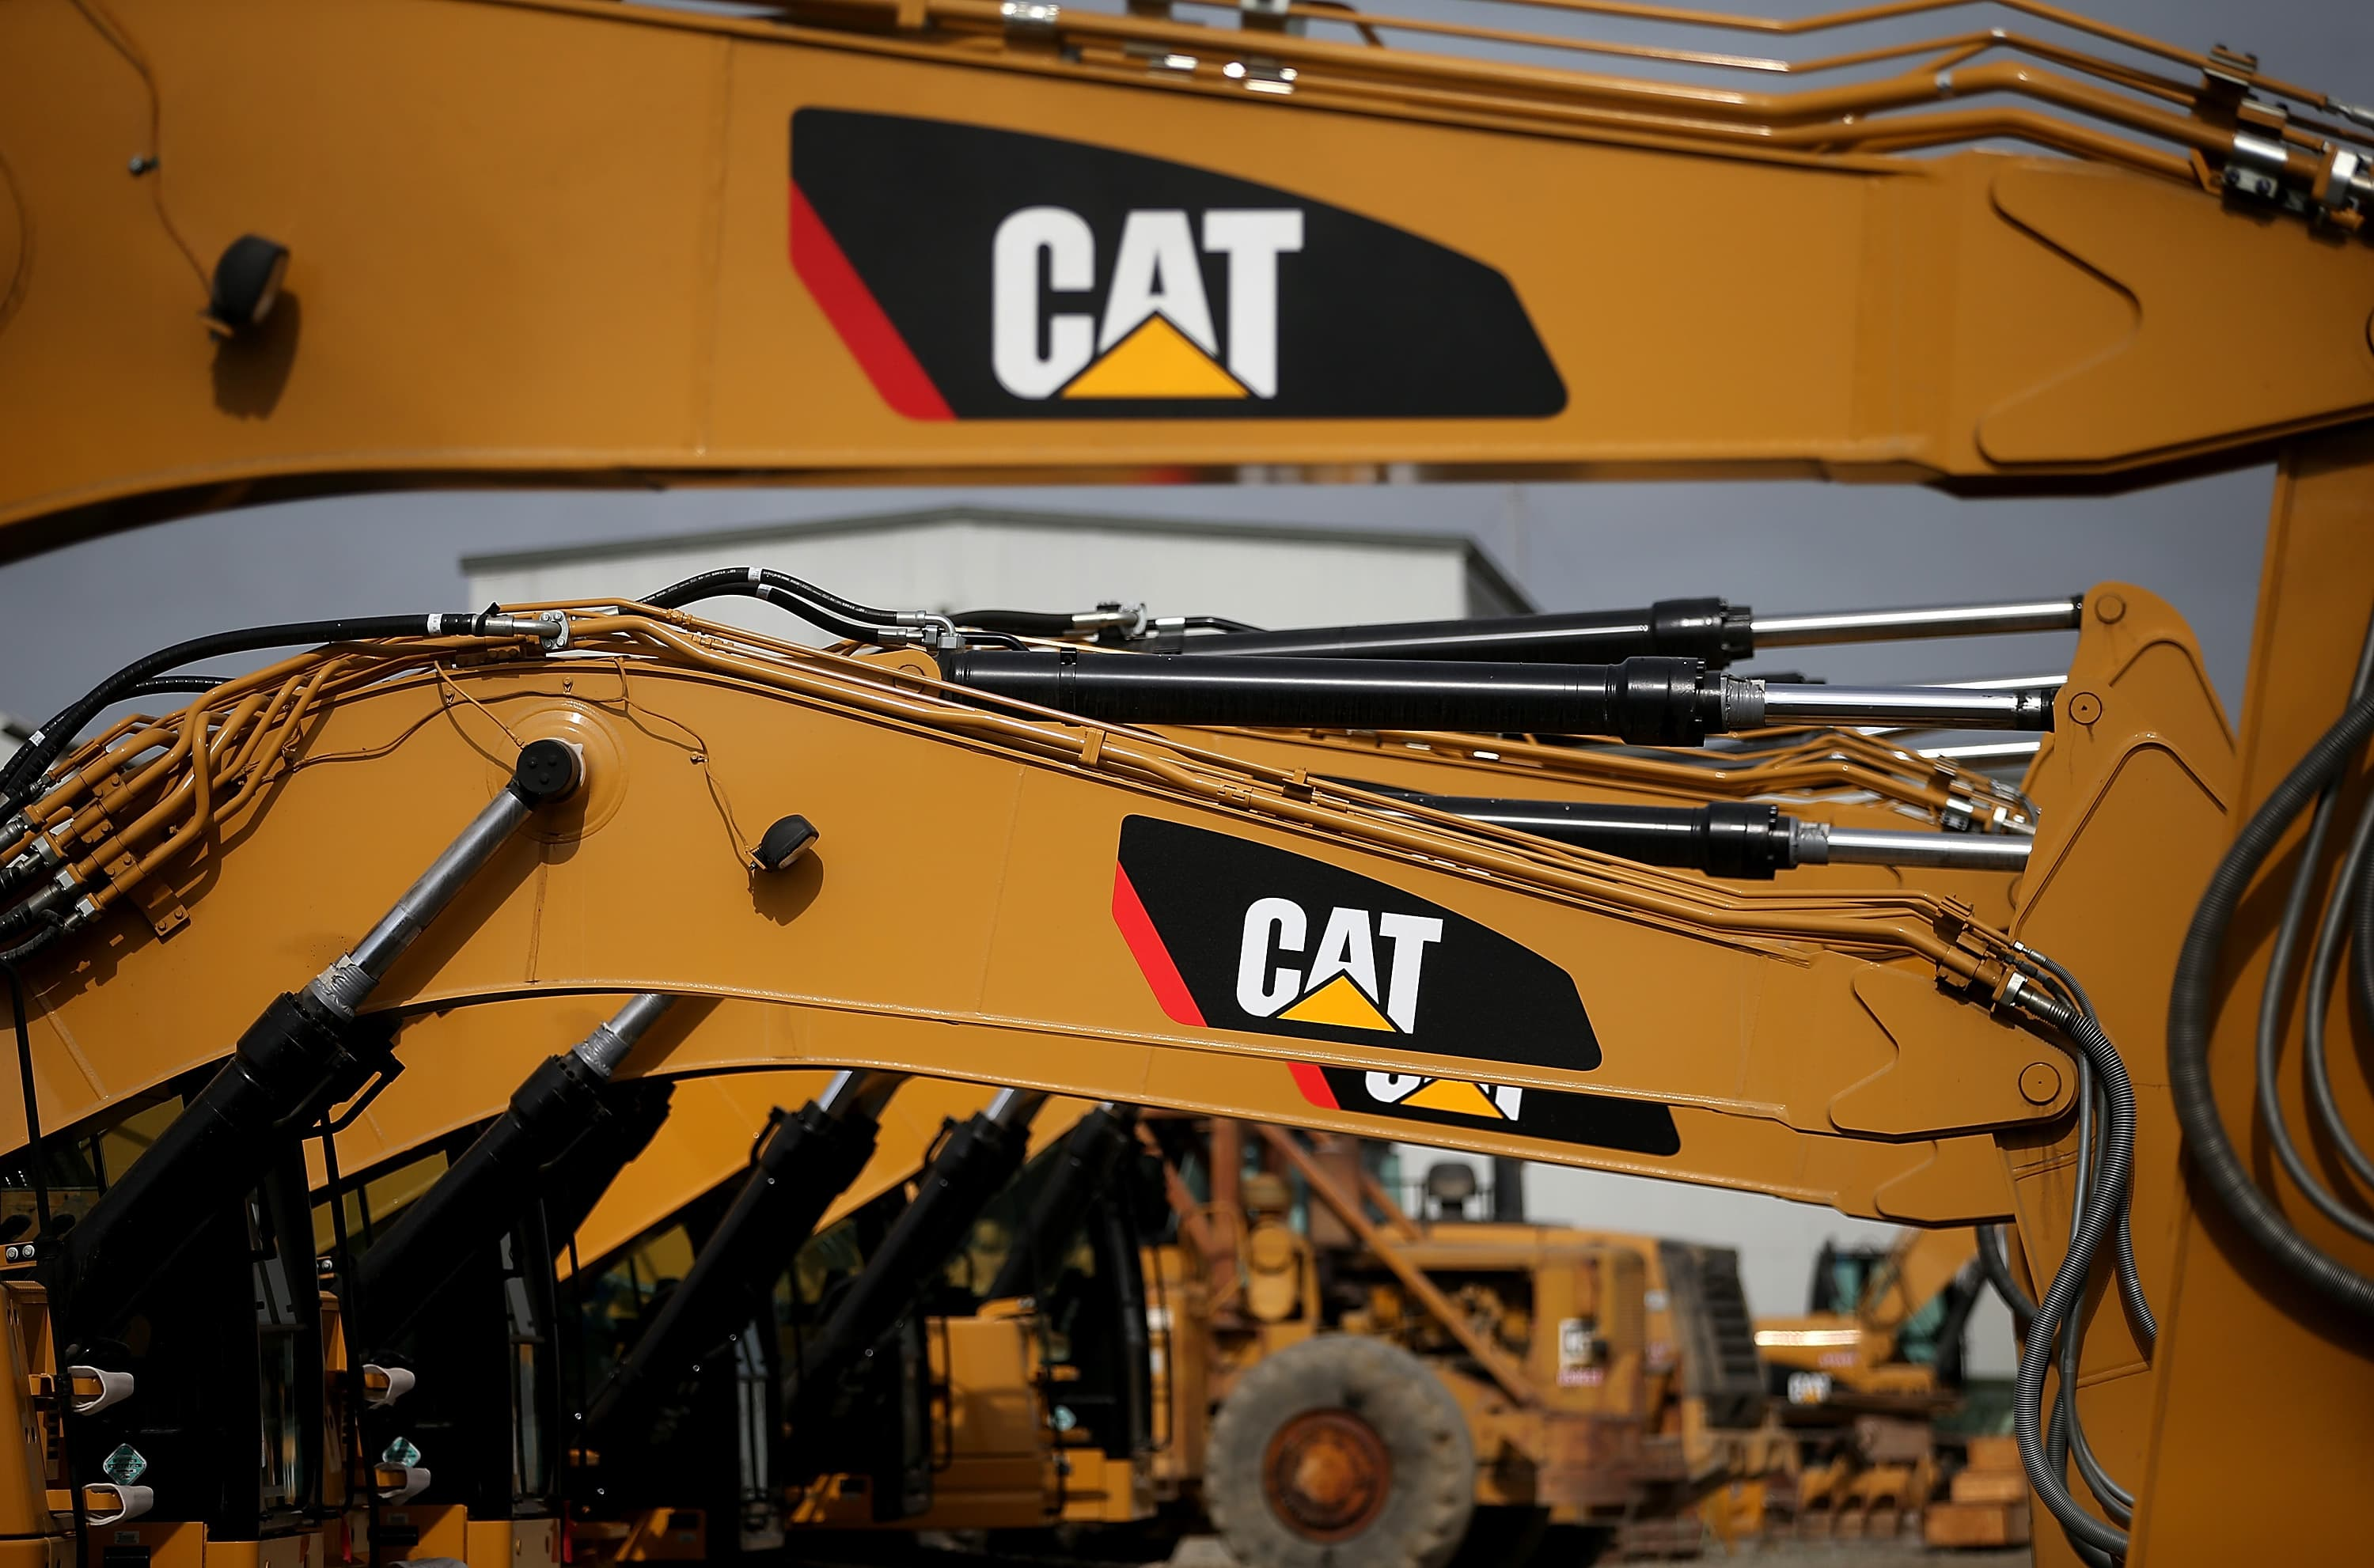 Caterpillar is 'really, really cheap,' but two traders warn that it may not be a good buy